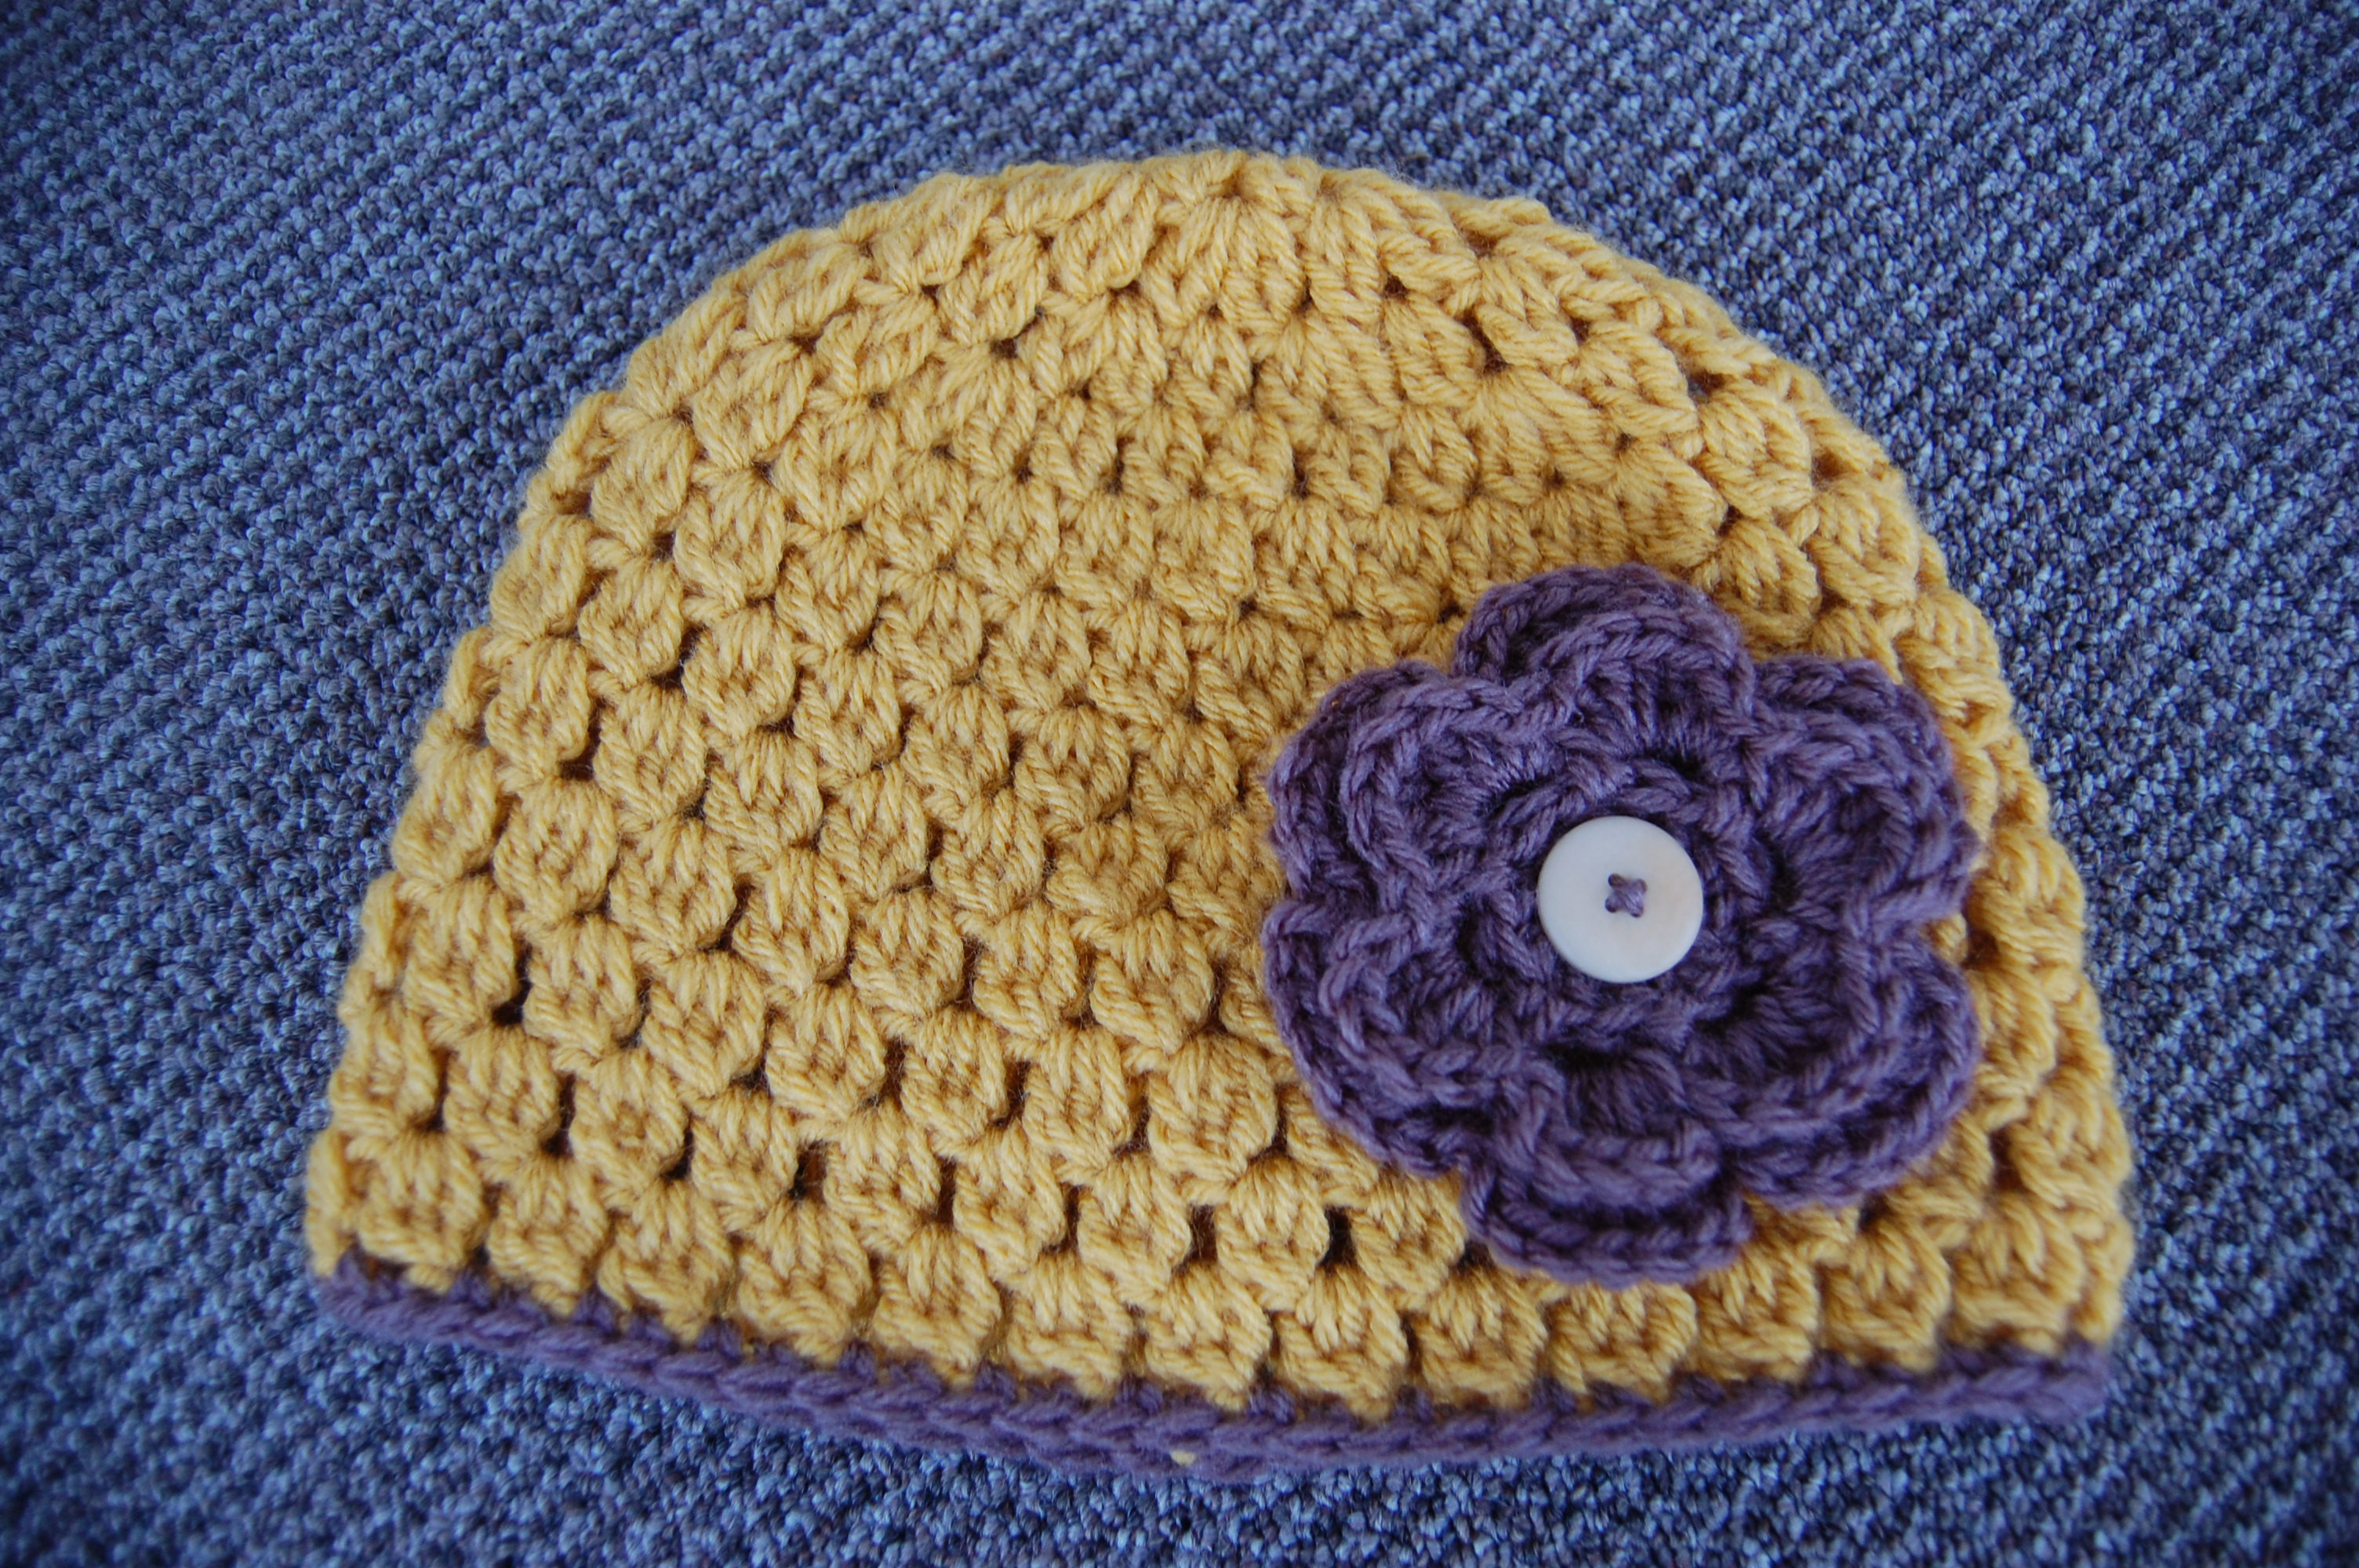 Free Easy Crochet Patterns Lovely Redheart Yarn Free Patterns for Crocheted Hats – Easy Of Superb 49 Images Free Easy Crochet Patterns